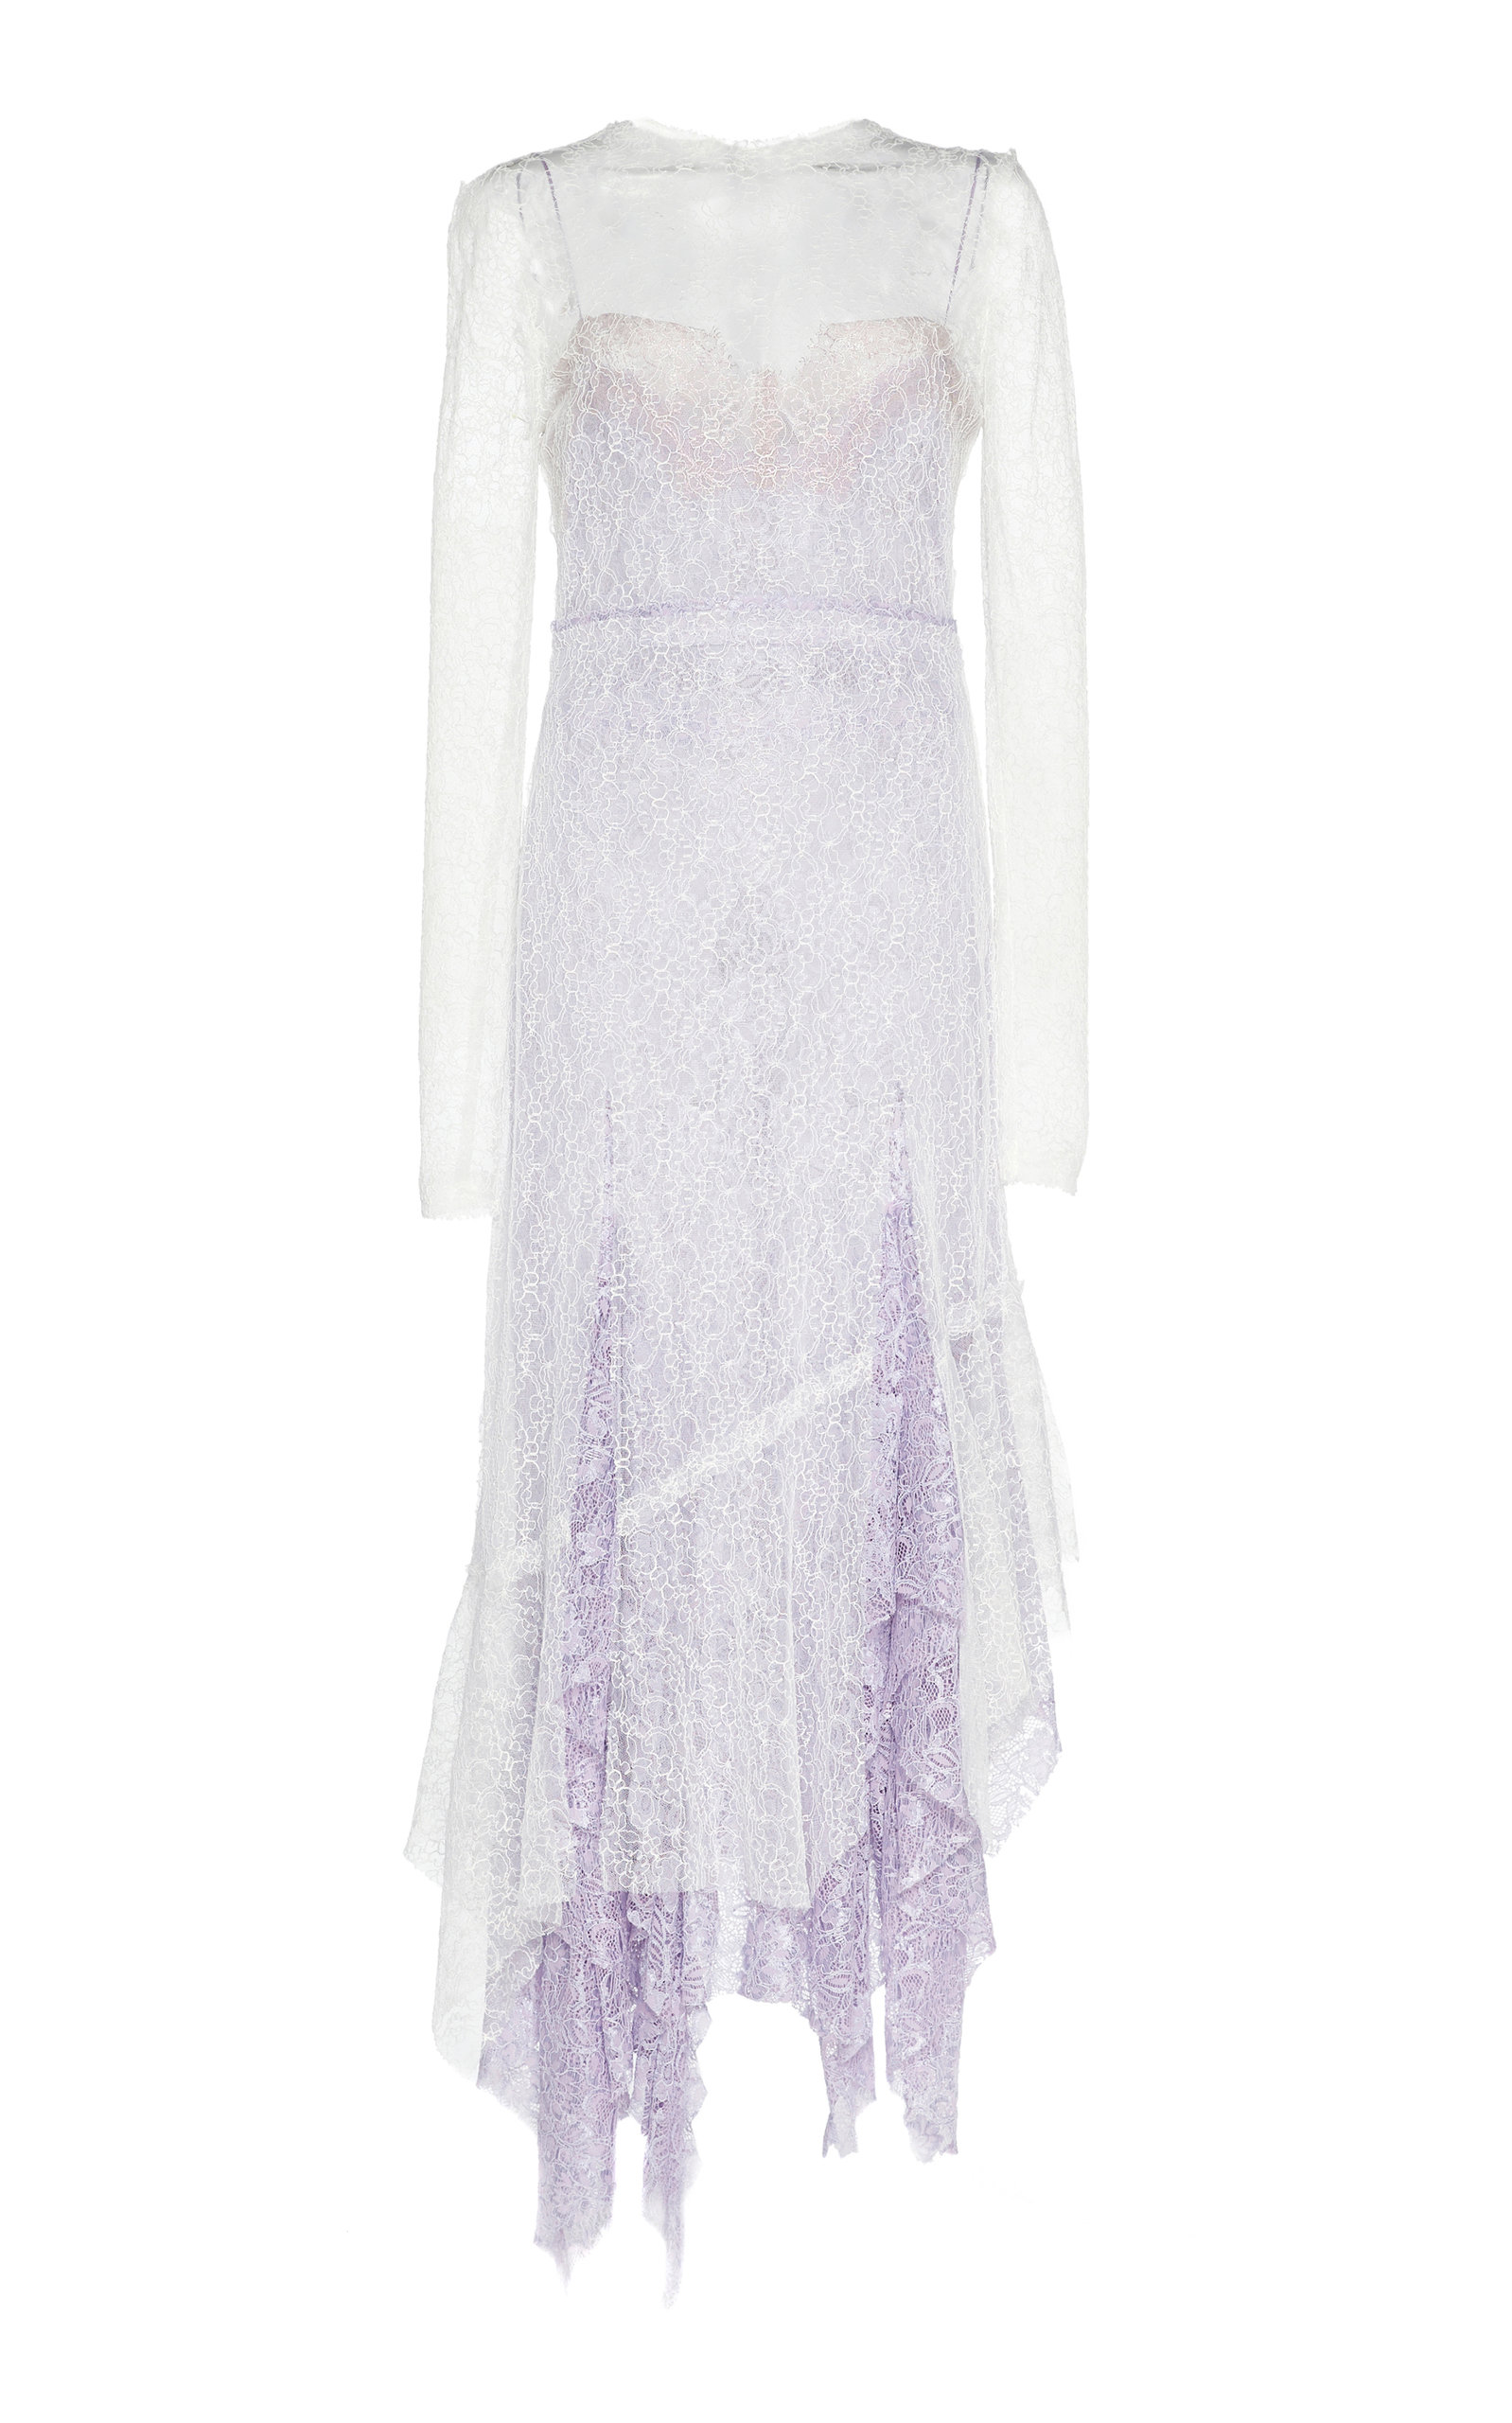 Buy Anaïs Jourden Two-Tone Ruffled-Trim Lace Midi Dress online, shop Anaïs Jourden at the best price